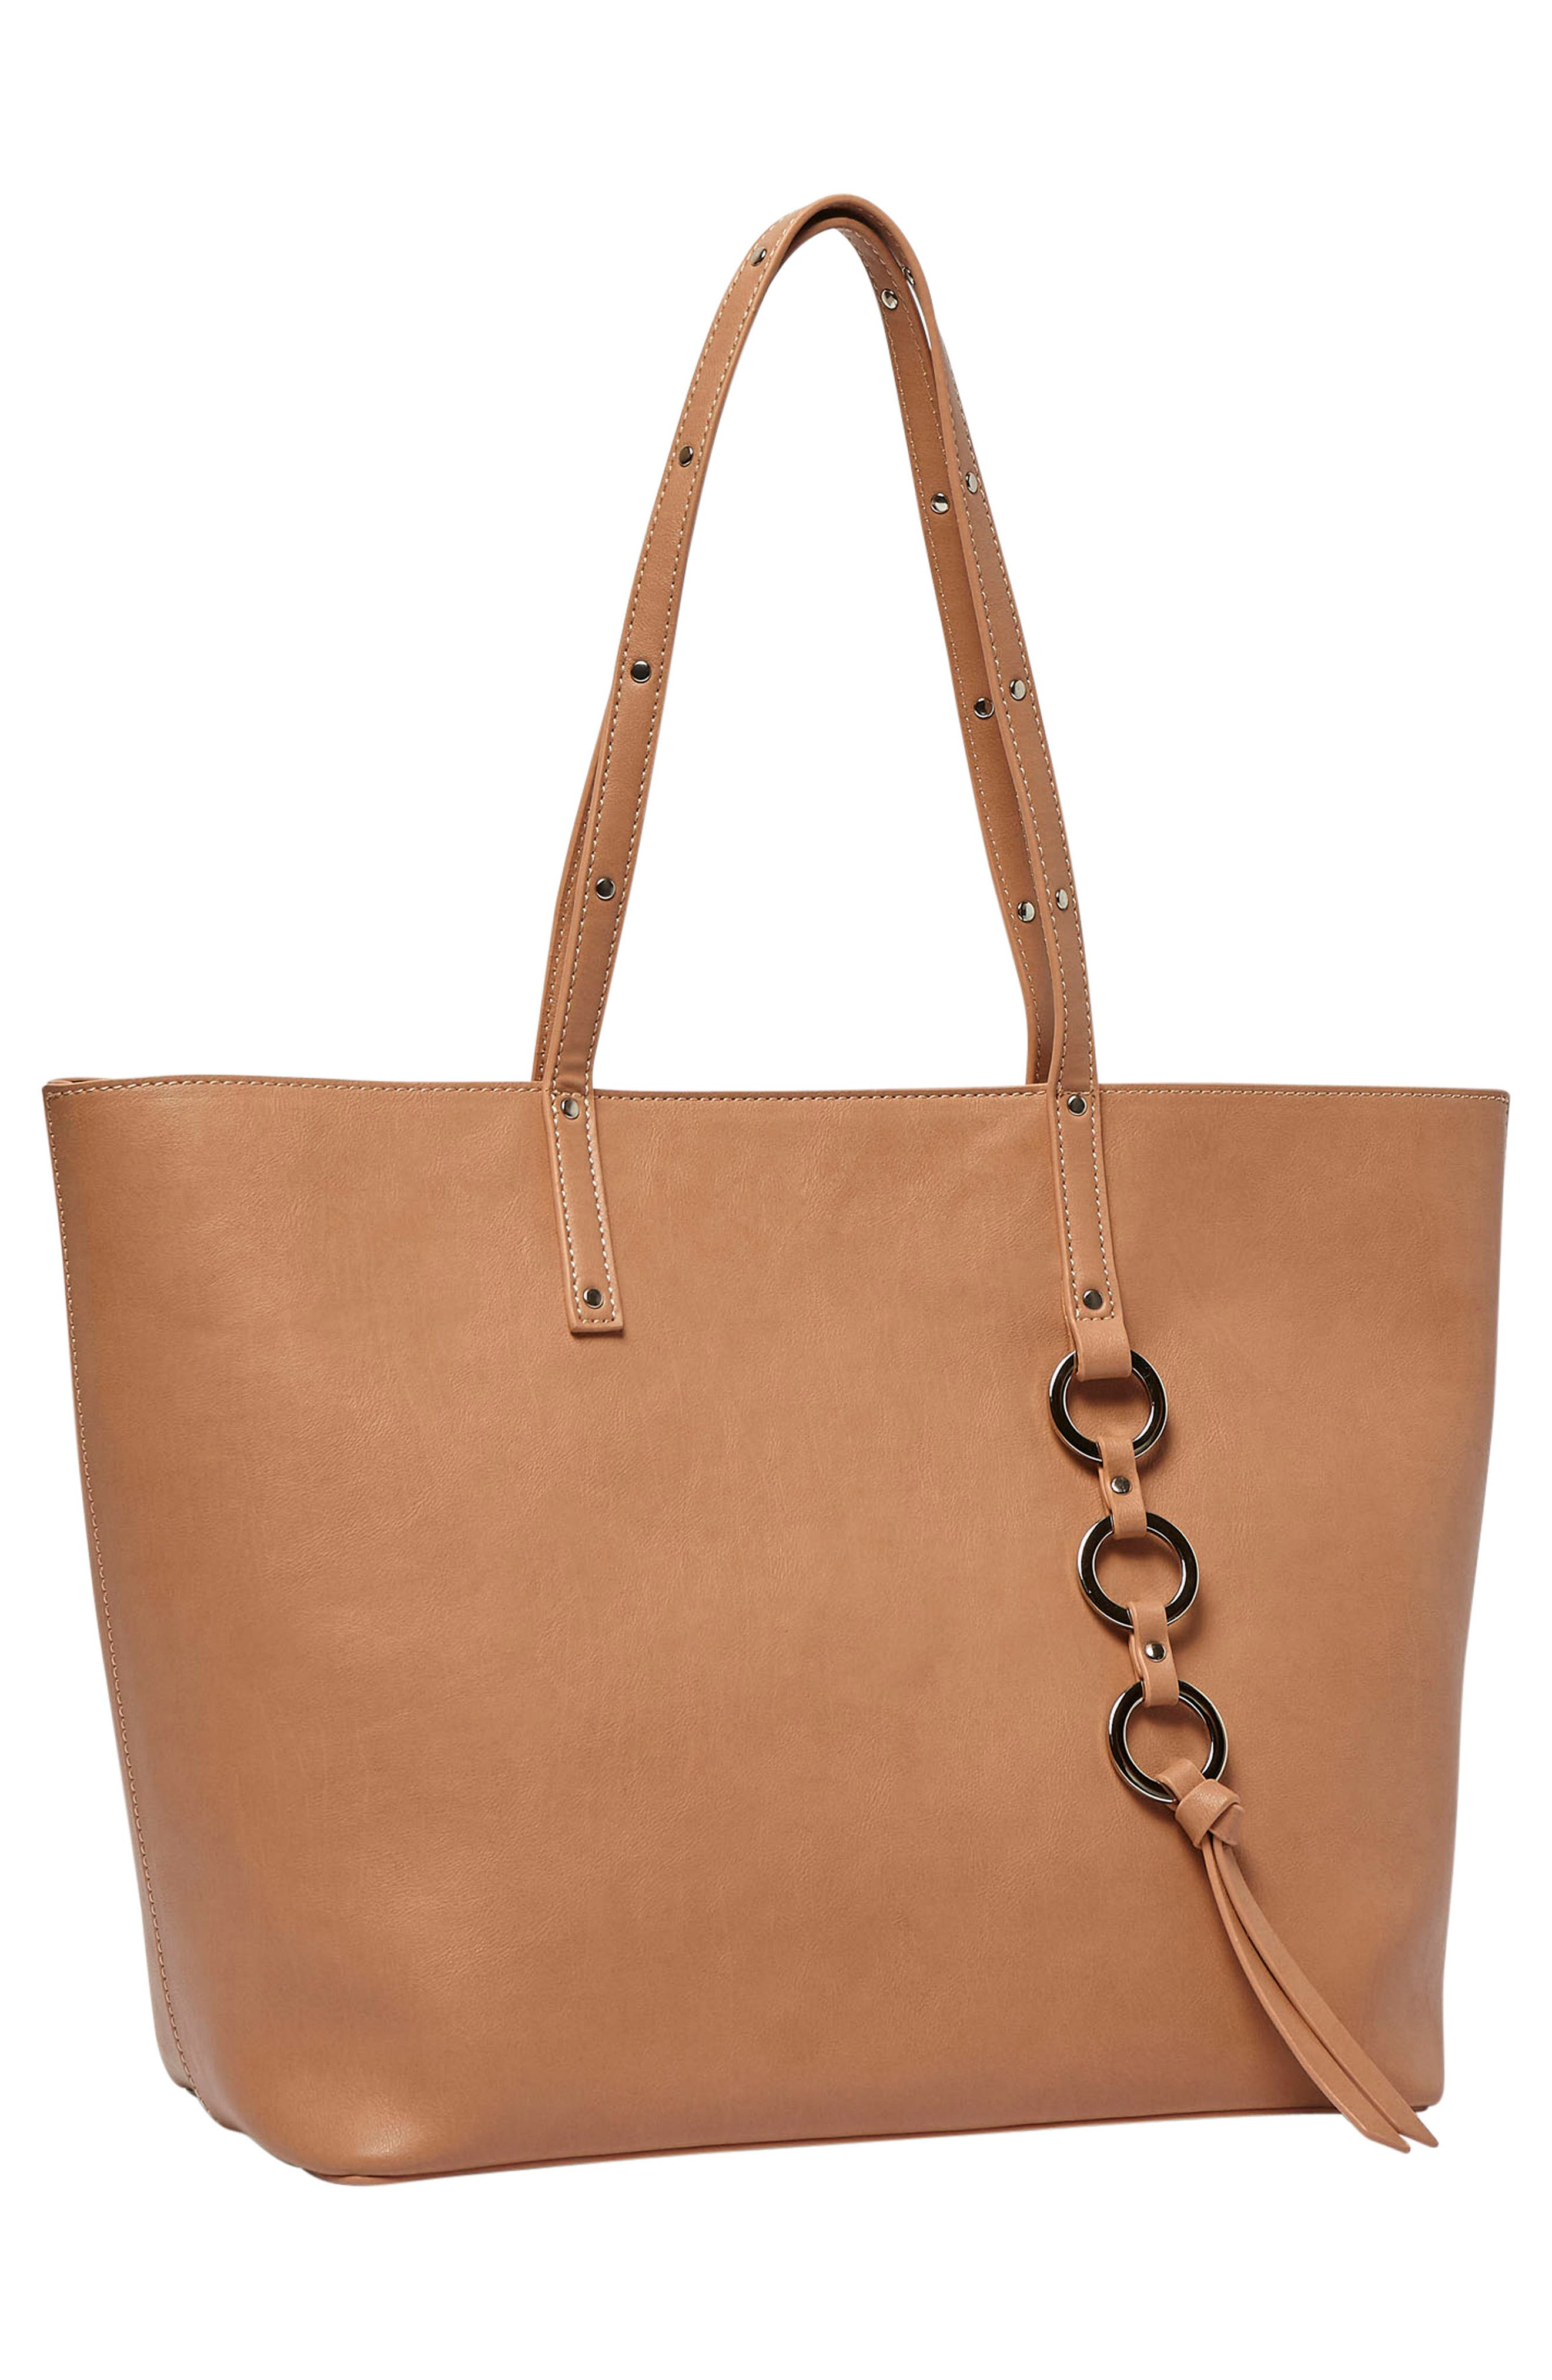 Wild Fire Vegan Leather Tote,                             Alternate thumbnail 11, color,